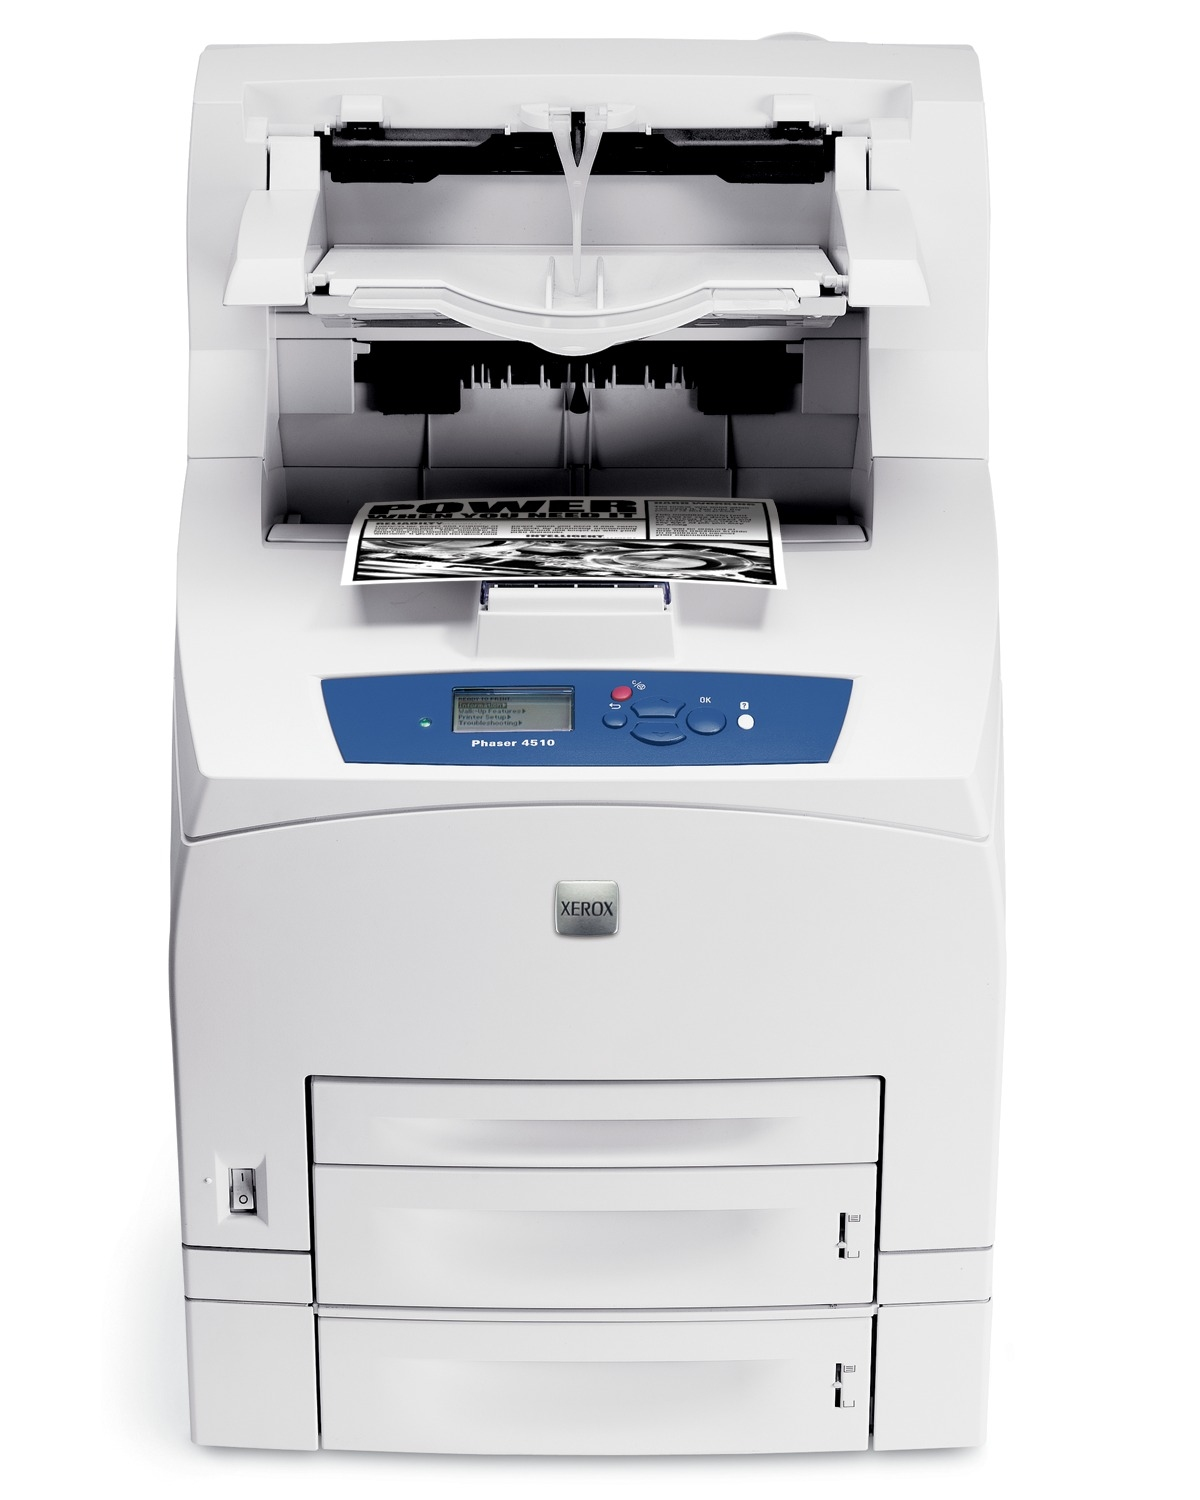 Xerox 4510DX Printer 4510V_DX - Refurbished